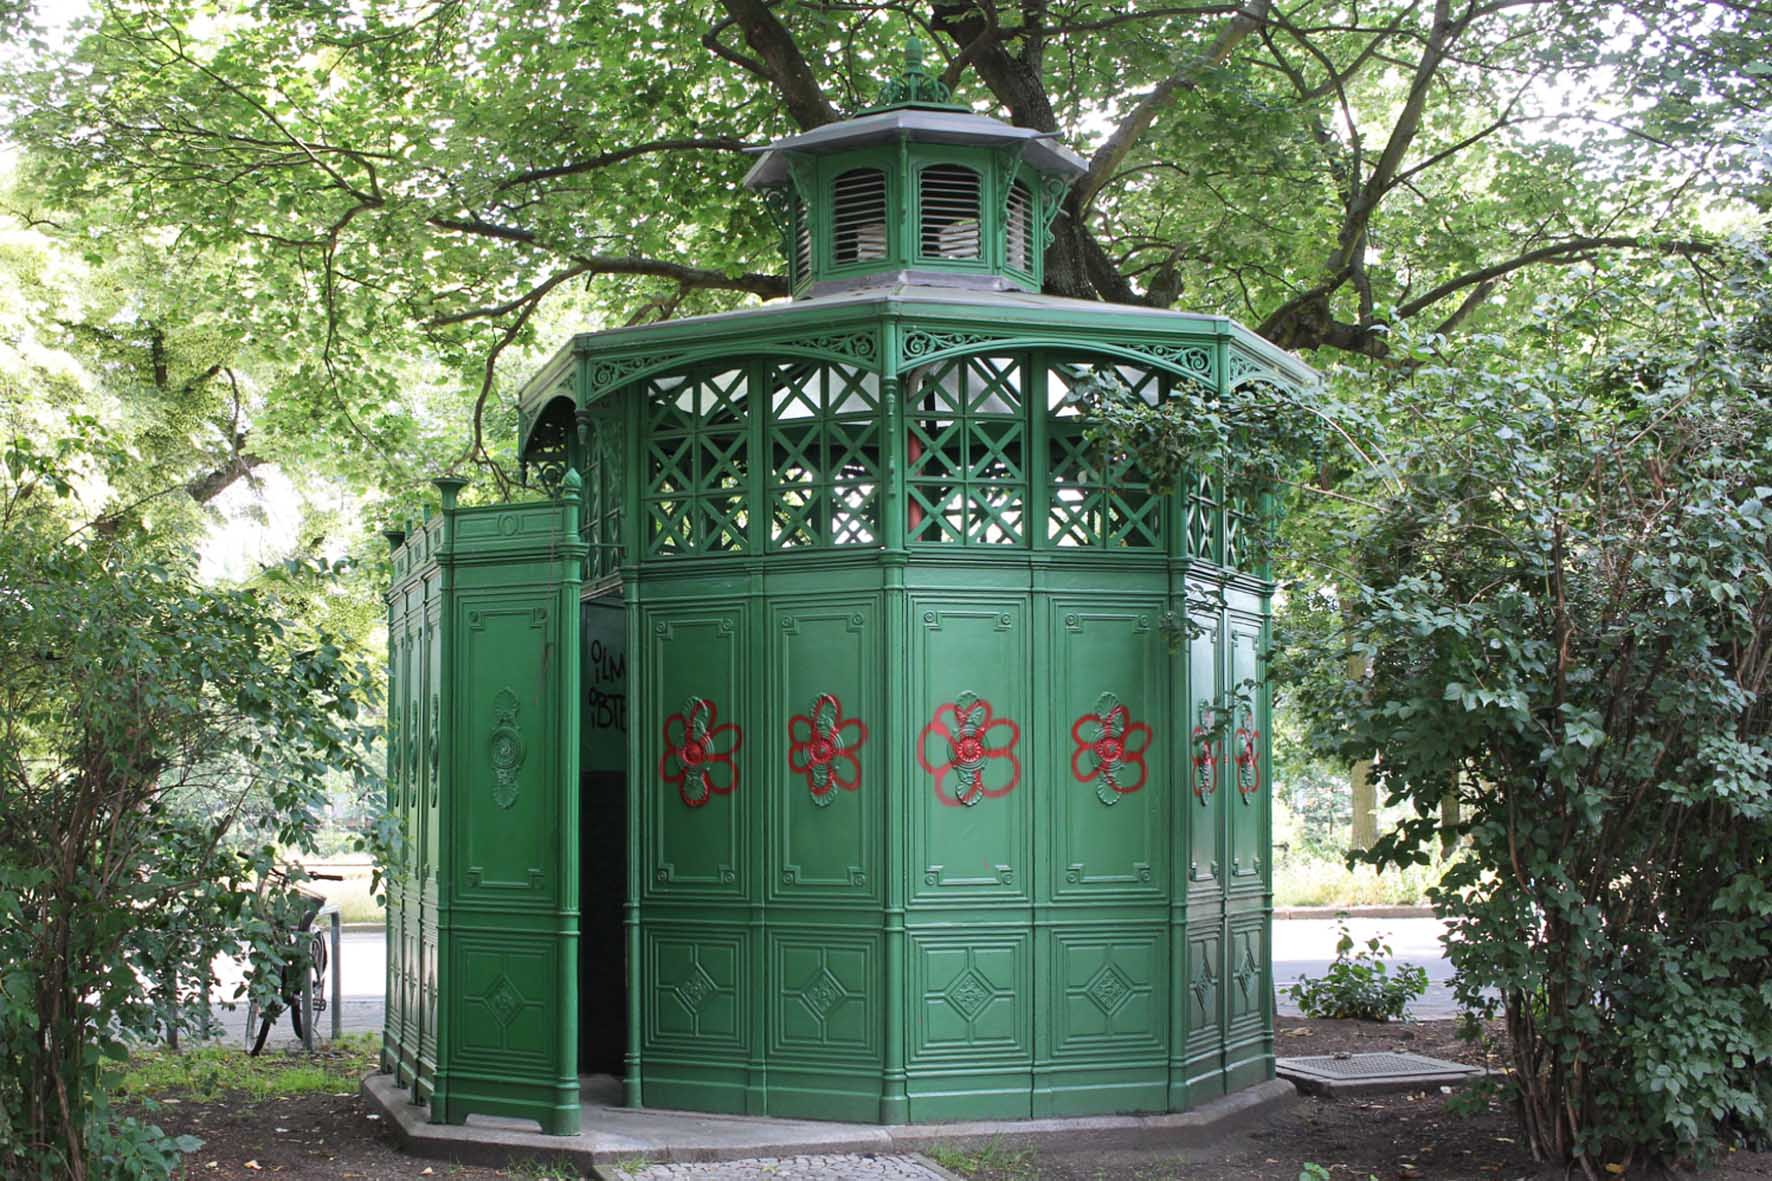 Café Achteck - Pekinger Platz - an example of Berlin's classic 19th century green cast iron public toilets